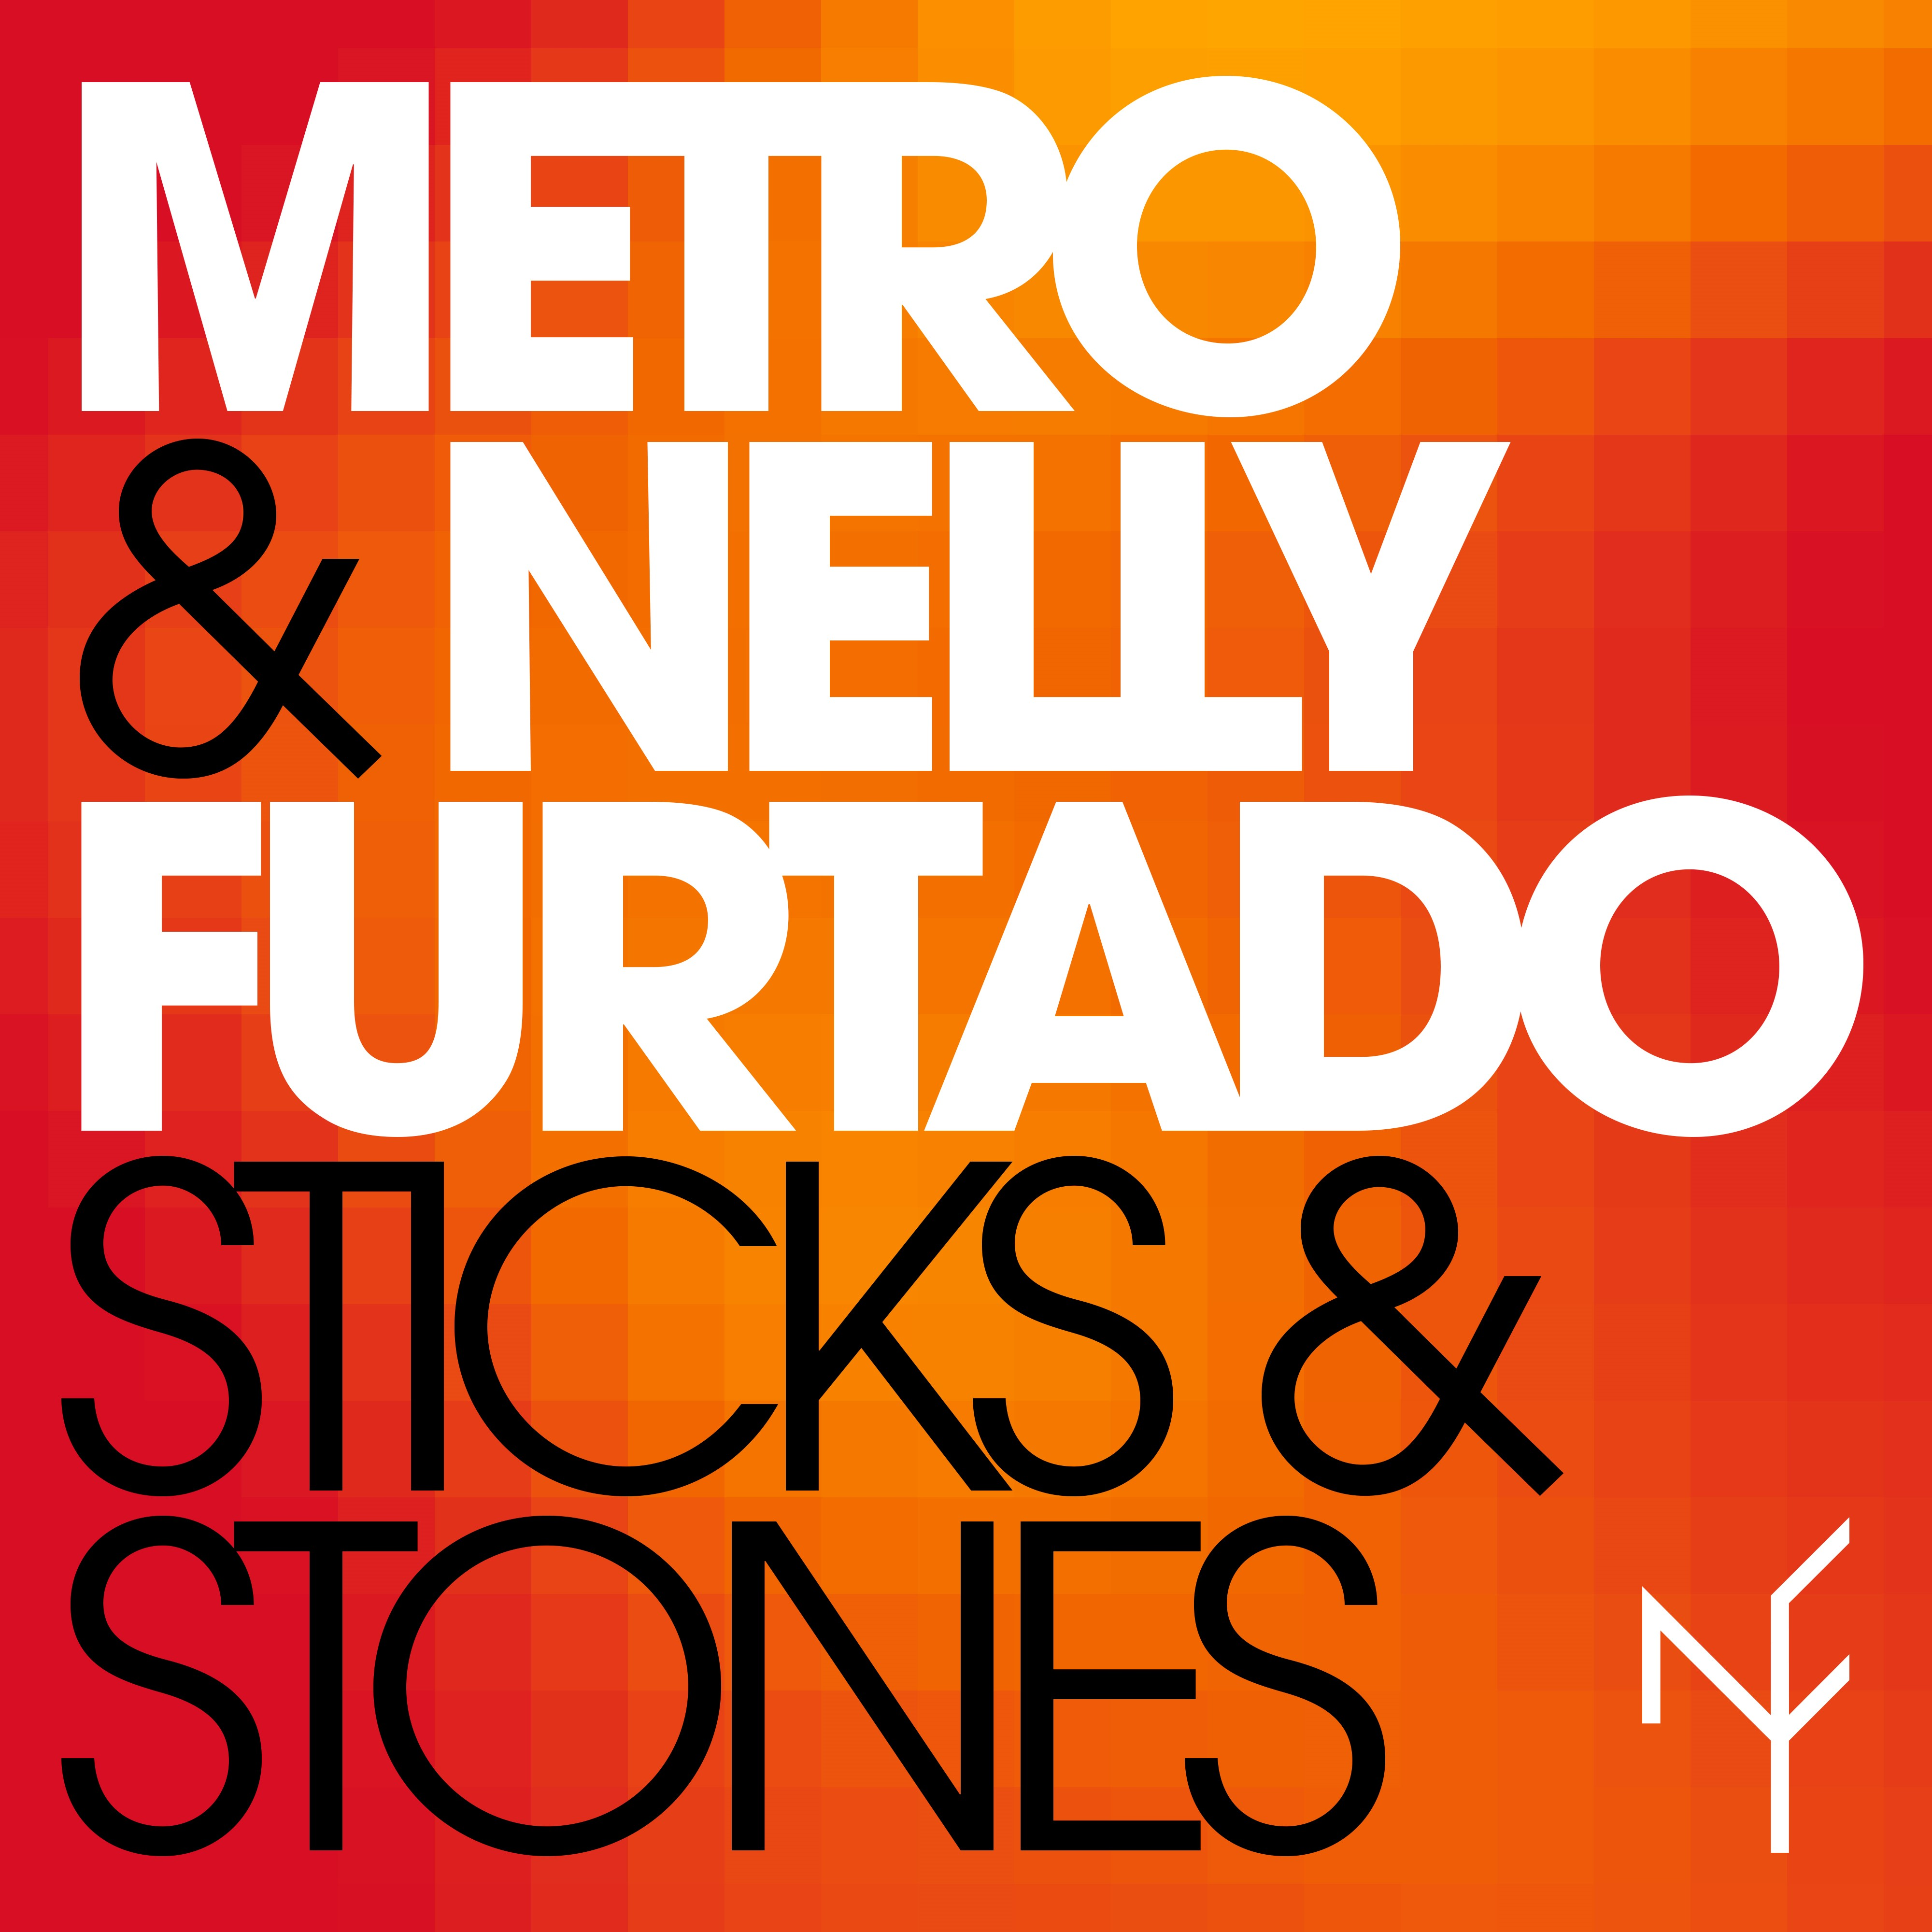 sticks & stones nelly furtado and metro sticks and stones lyric video the ride pop dance song music radikal records north america